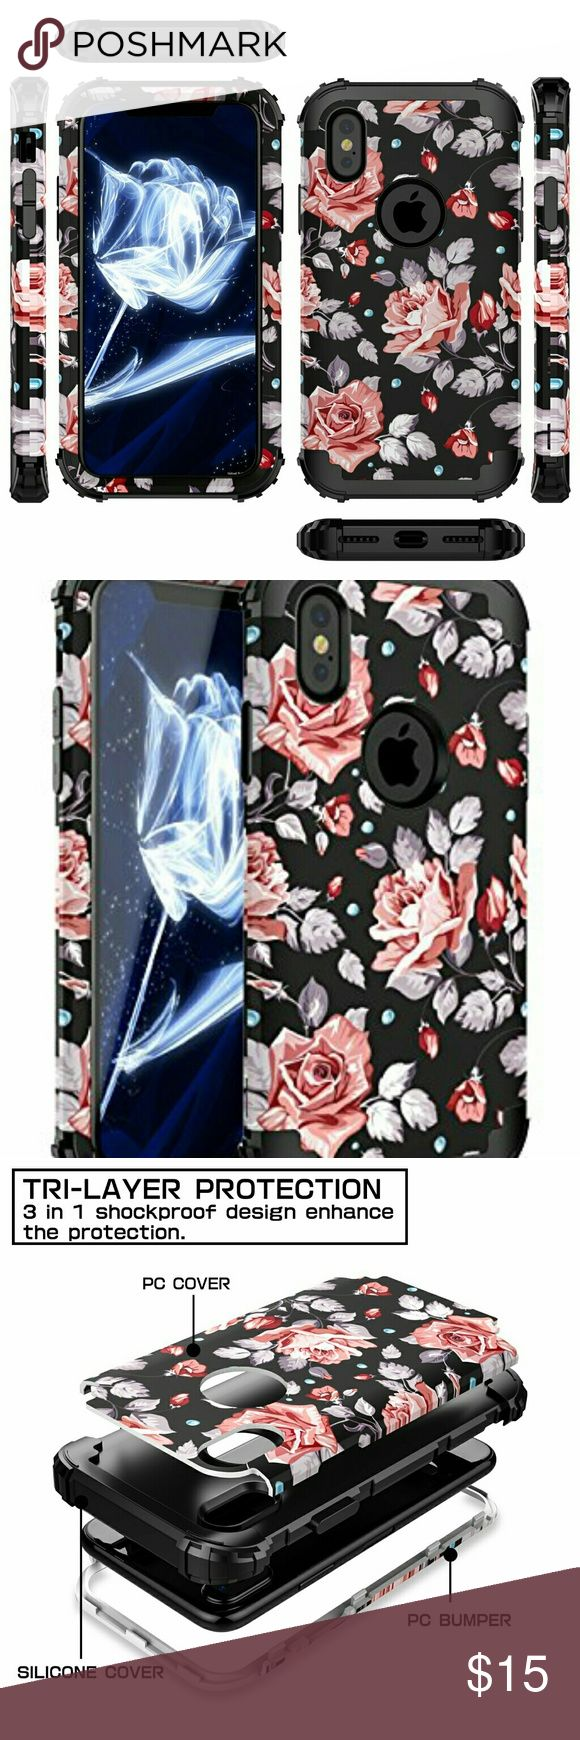 Brand new in package iPhone X Case, [Heavy Duty] Three Layer Hybrid Sturdy Armor High Impact Resistant Protective Cover Case For iPhone X 2017 Release,Rose Flower/Black Accessories Phone Cases